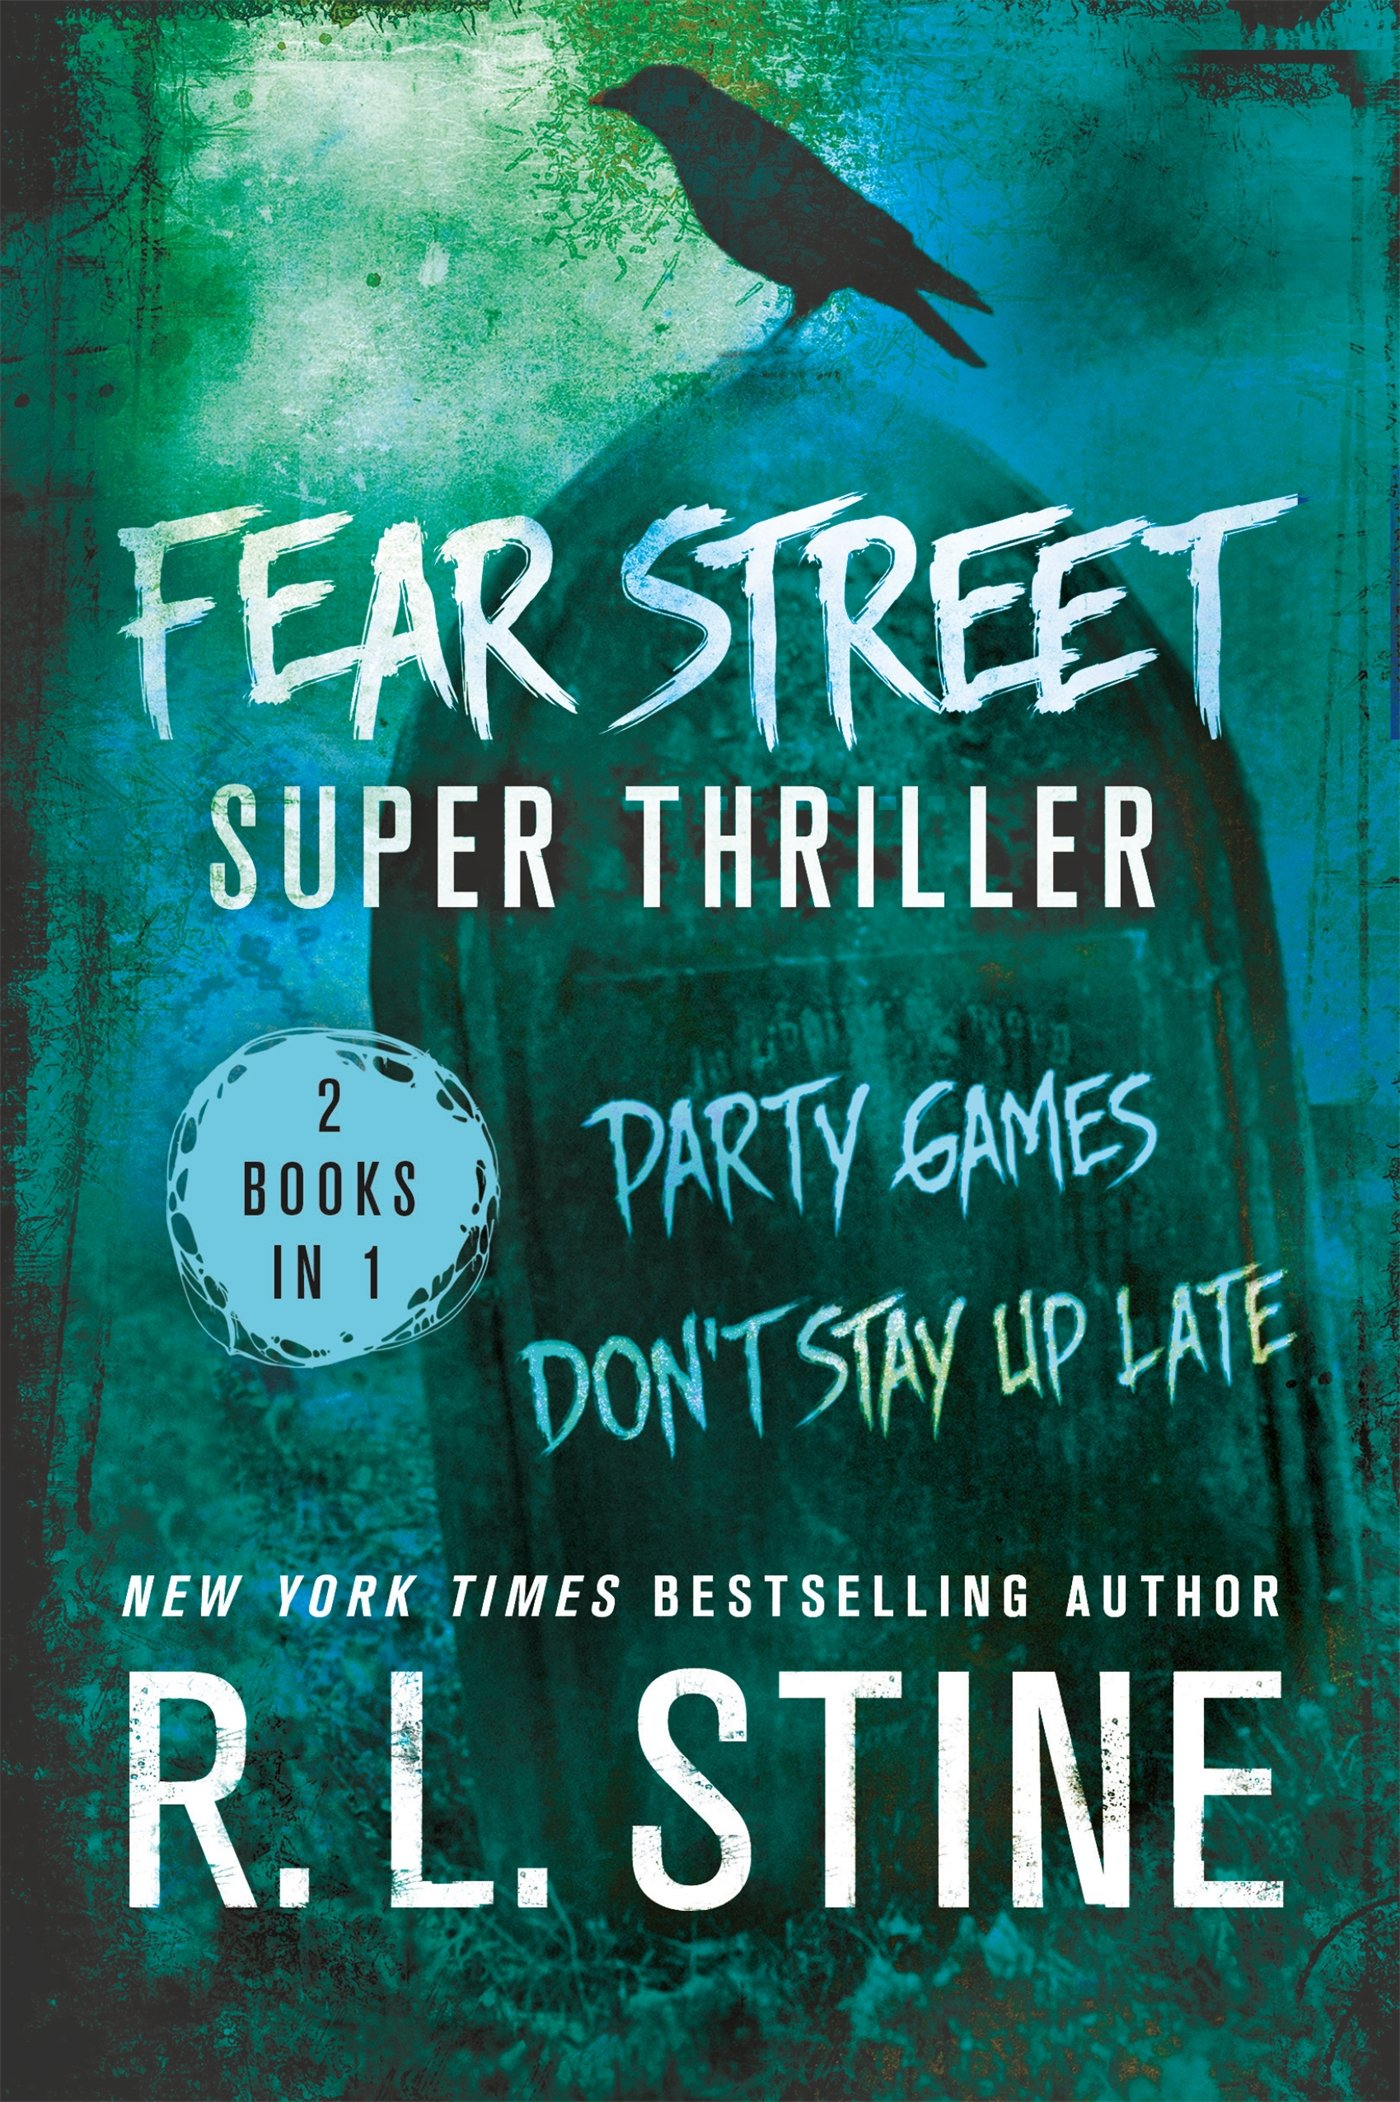 Fear Street Super Thriller Party product image